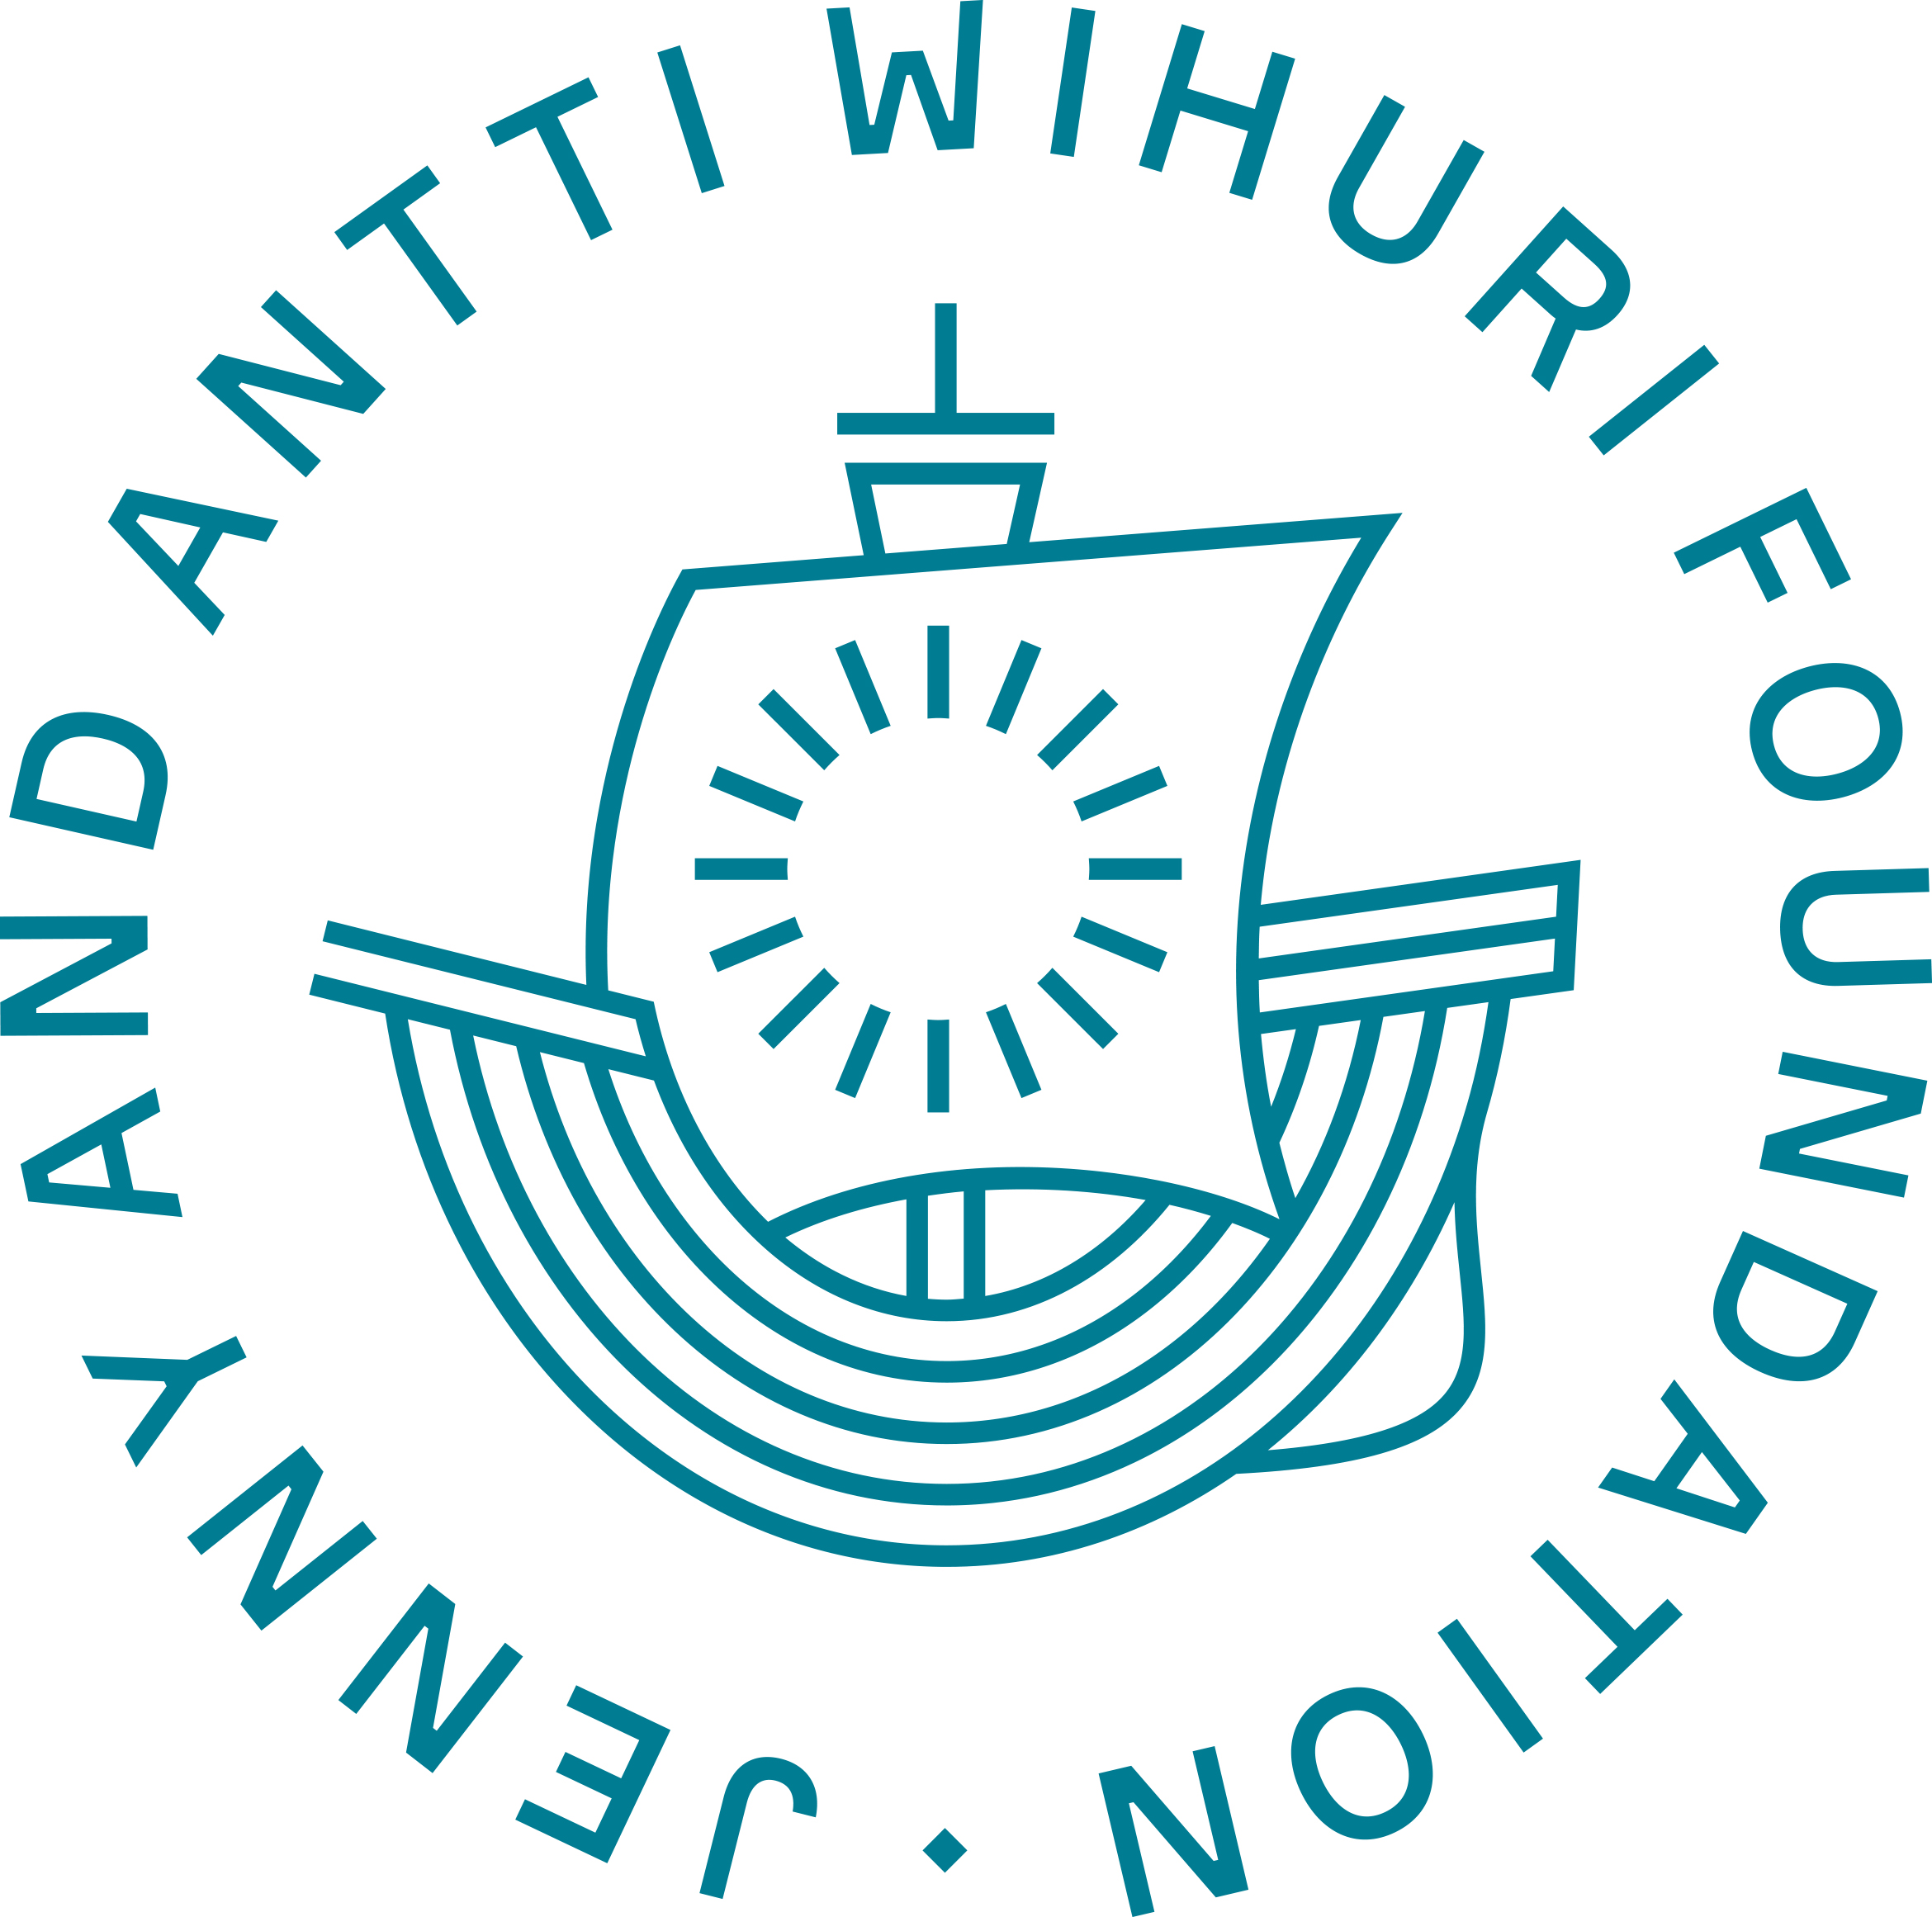 Jenny and Antti Wihuri Foundation